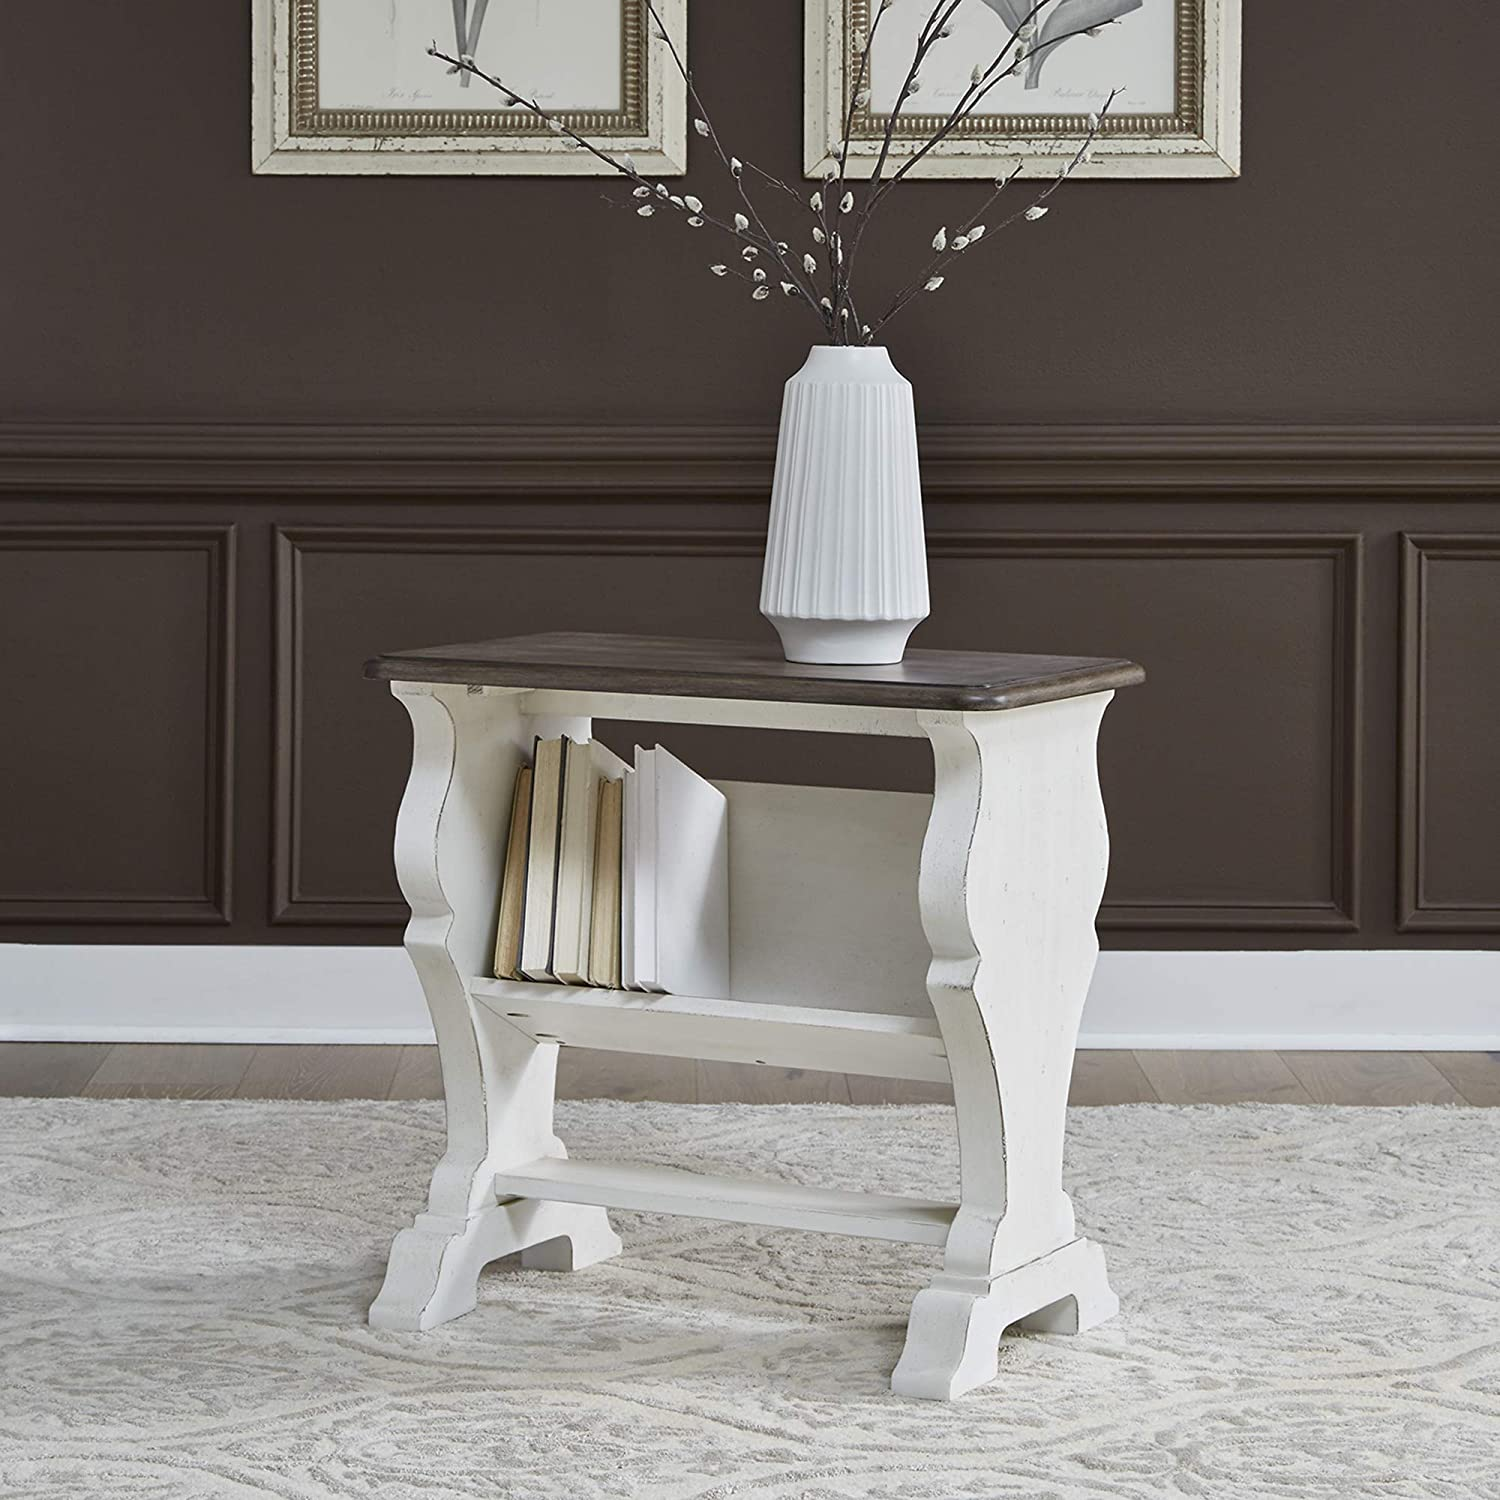 Liberty Furniture Industries Abbey Road Library Chair Side Table, Porcelain White